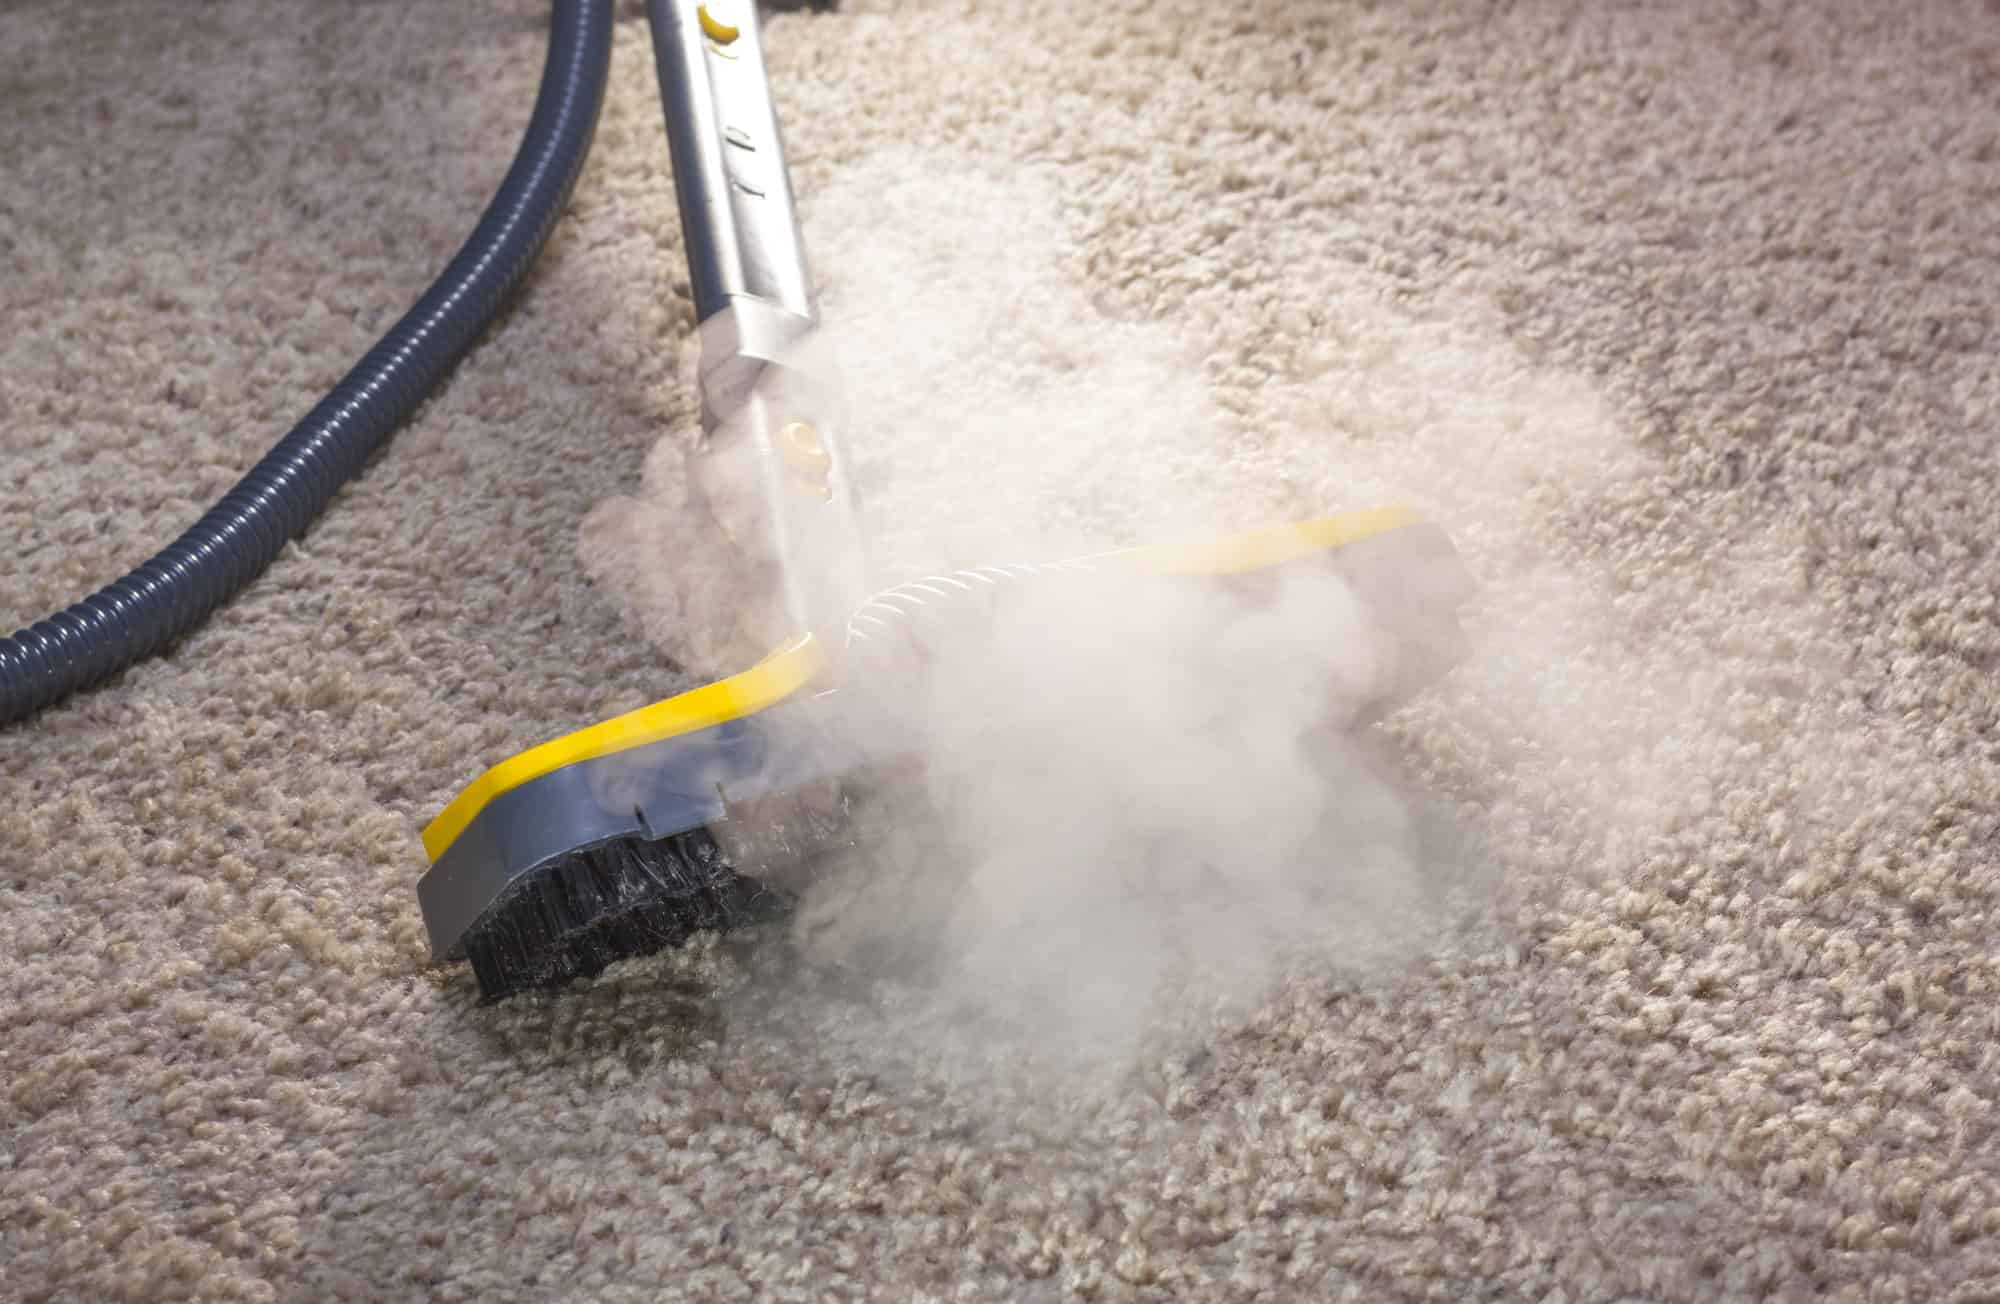 steam coming from steam cleaner on carpet